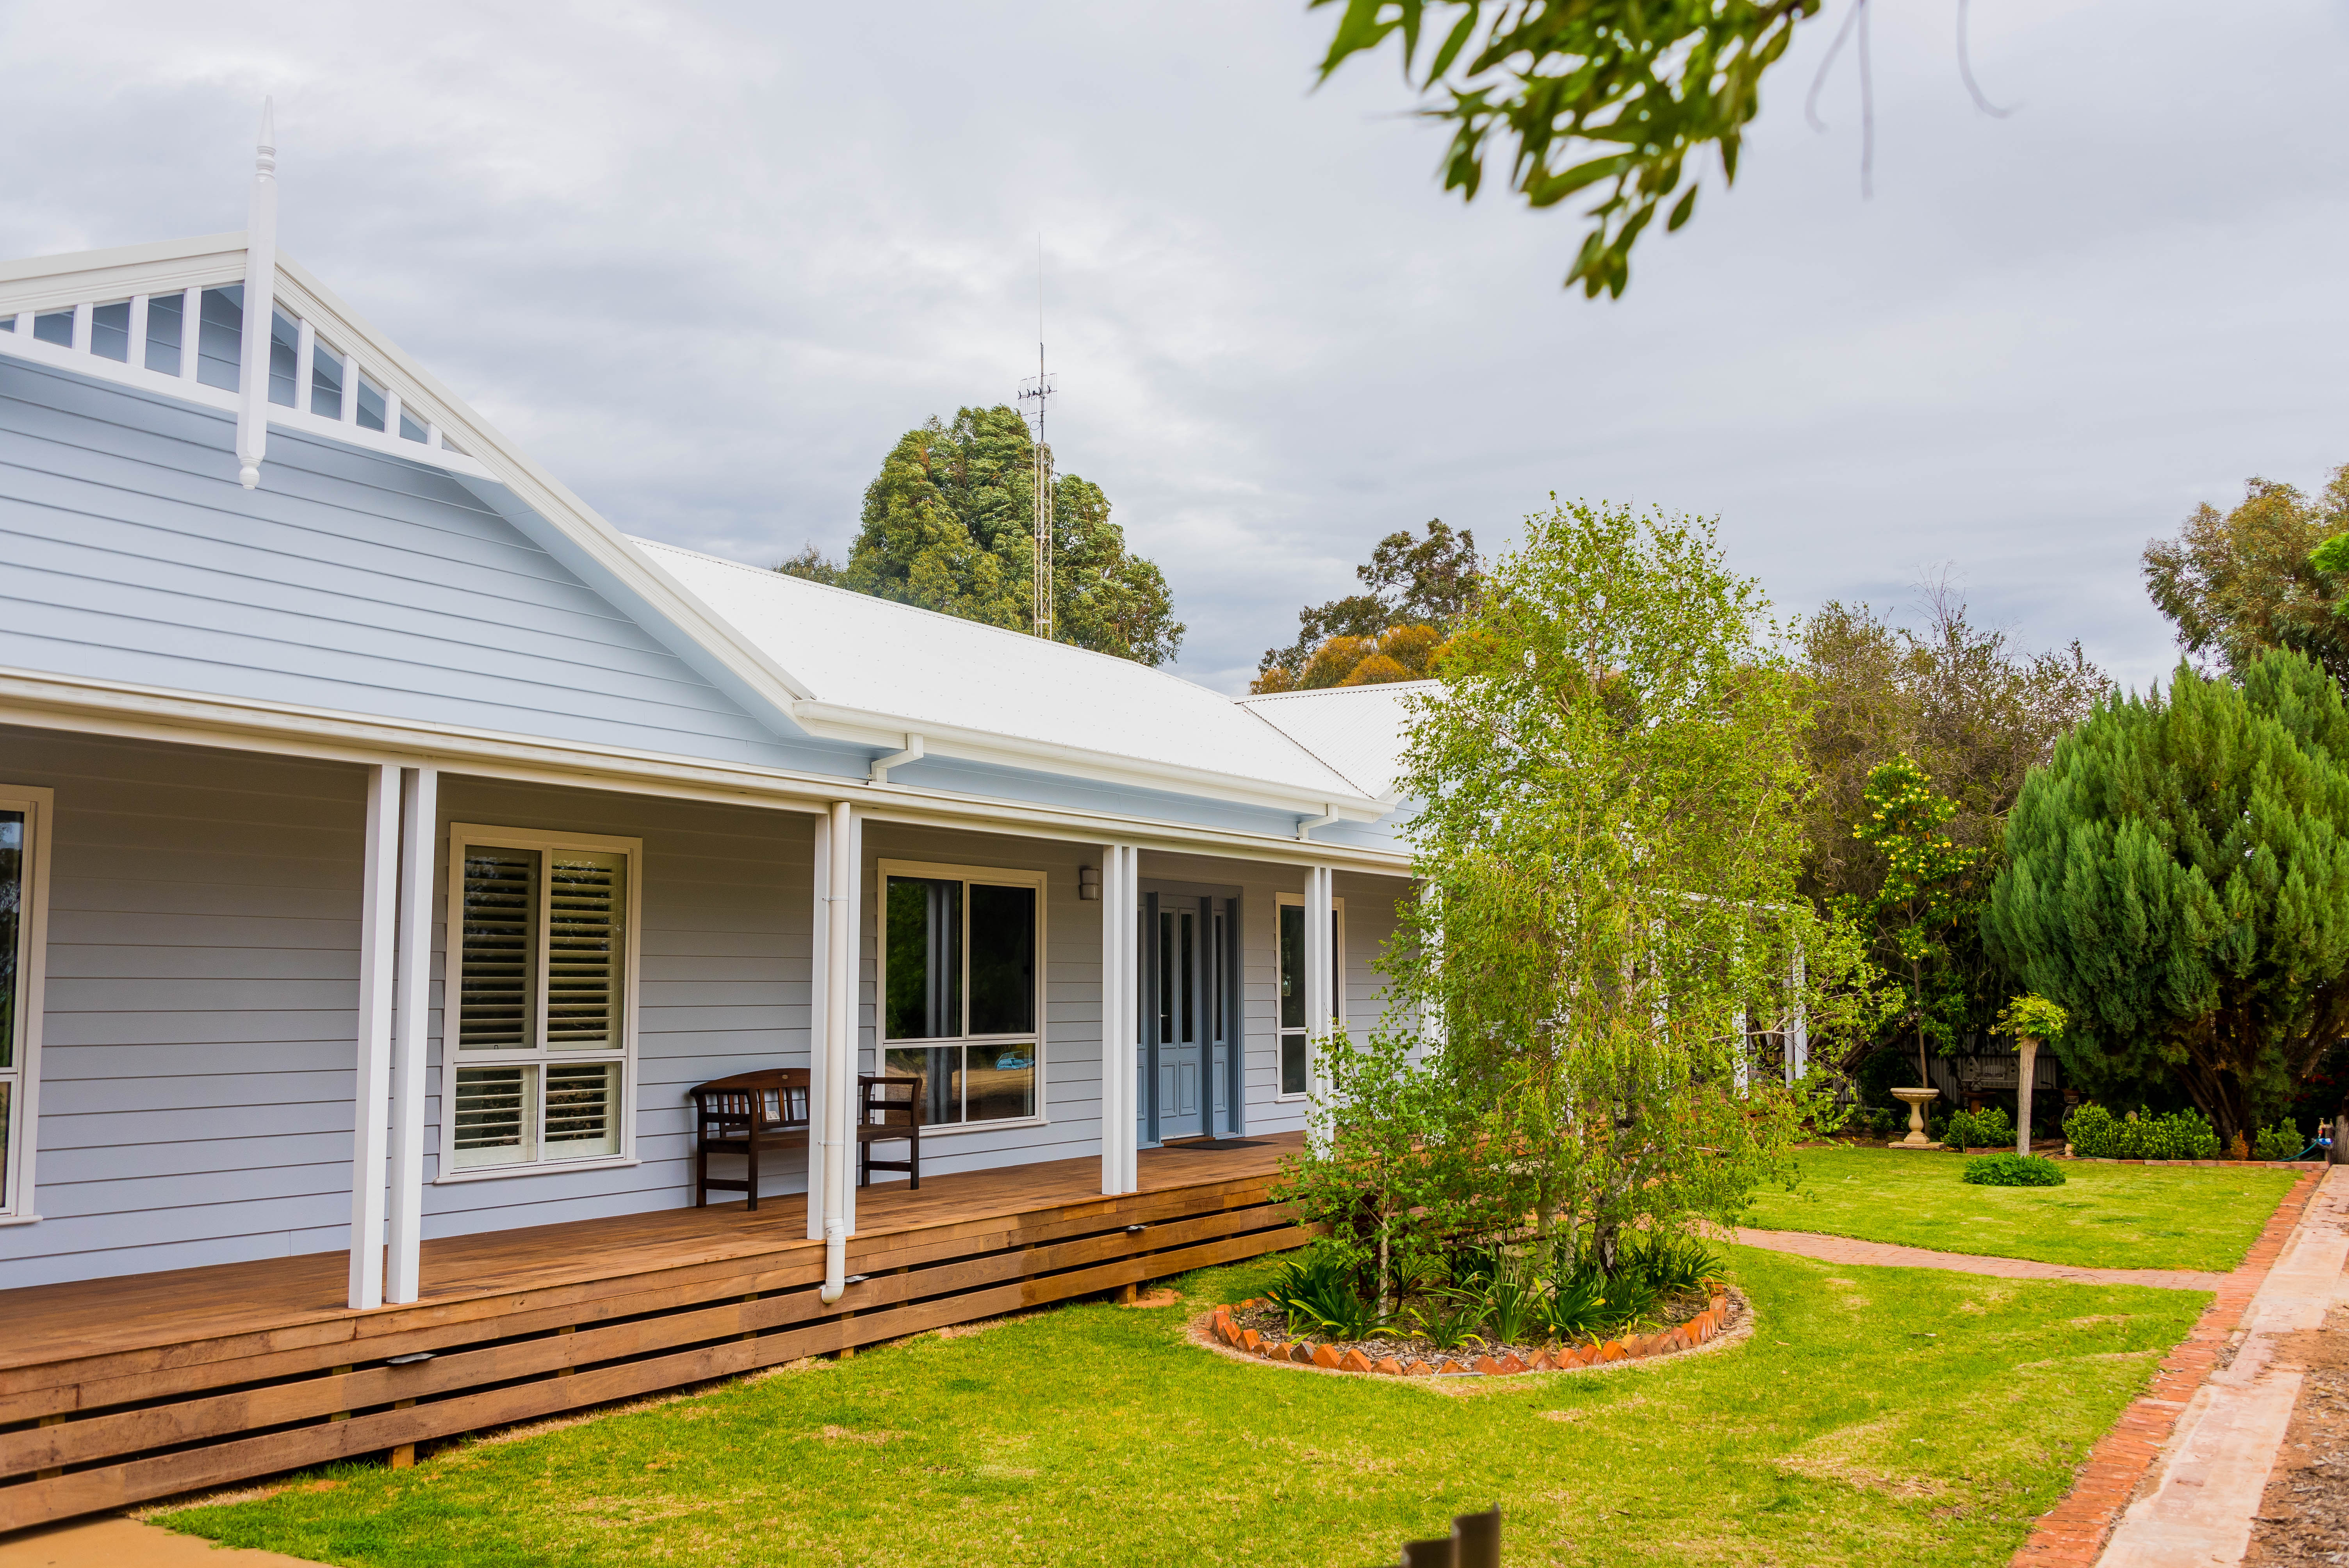 Enjoy the Best Range of Quality Modular Homes in Victoria NSW & SA